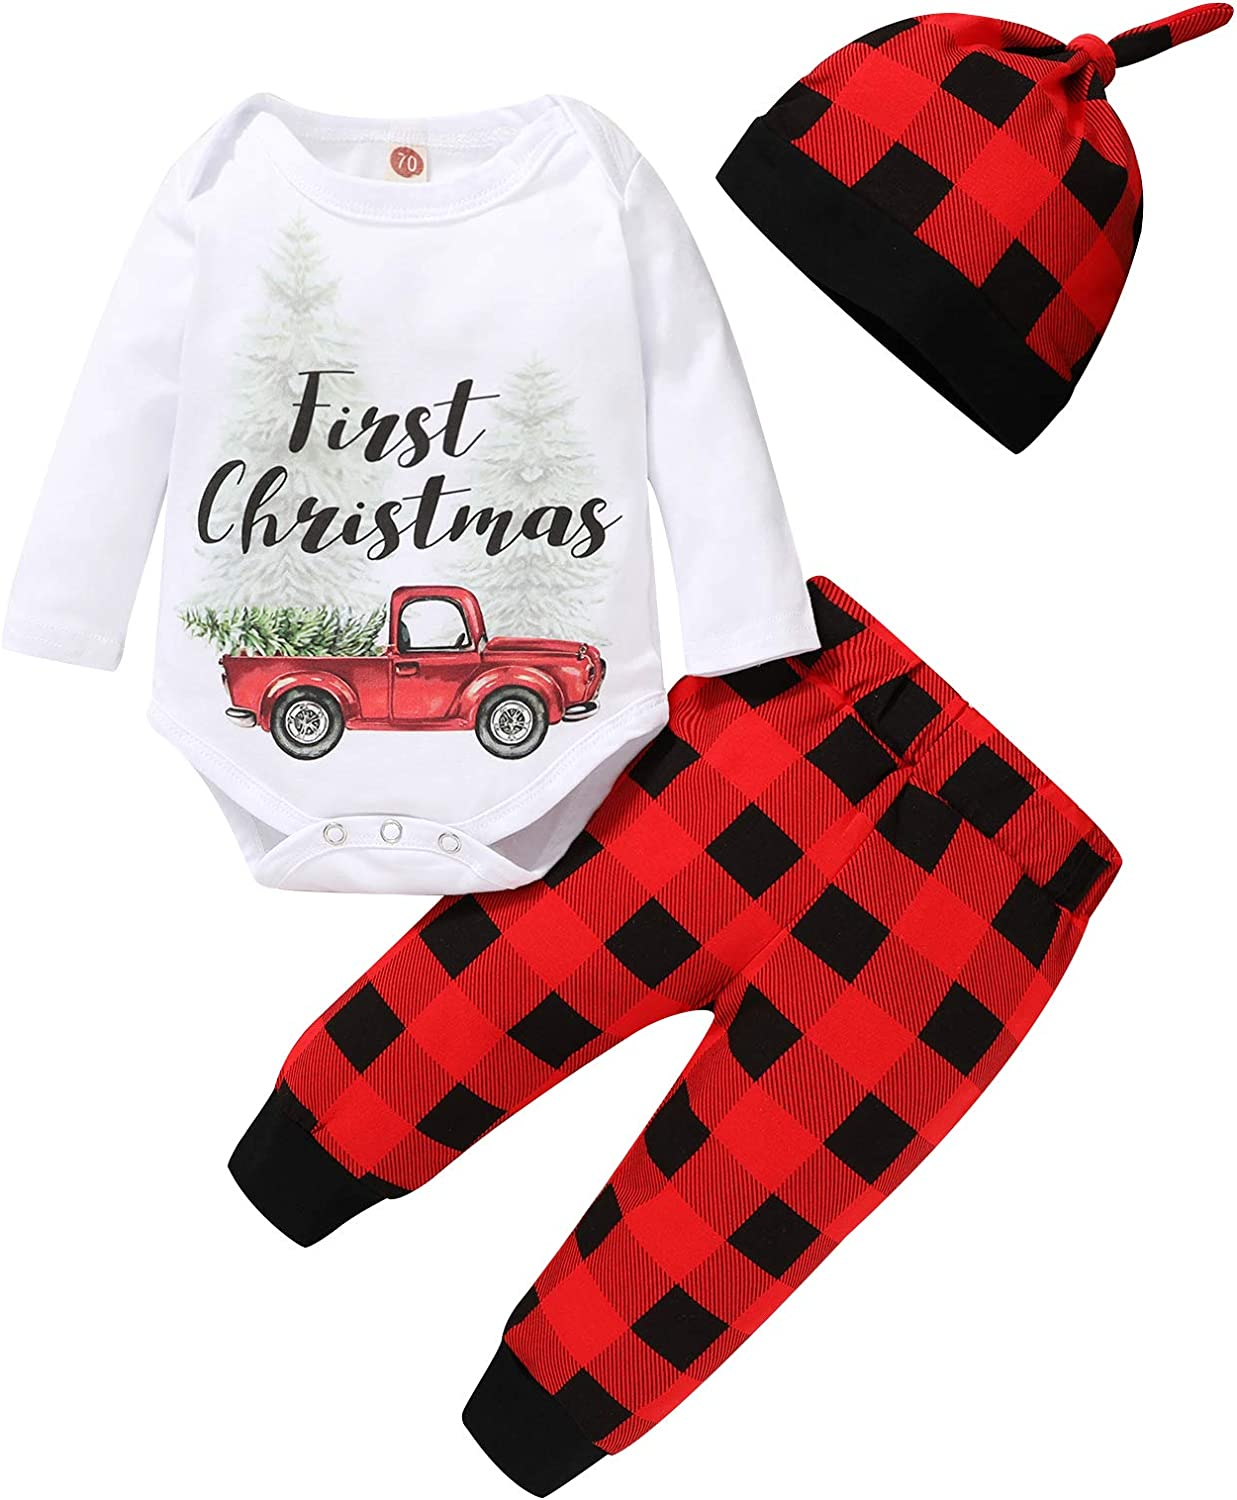 Newborn Baby Boy Girls Christmas Outfit First Christmas Romer Top + Red Plaid Pants + Hat 3Pcs Xmas Clothes Set